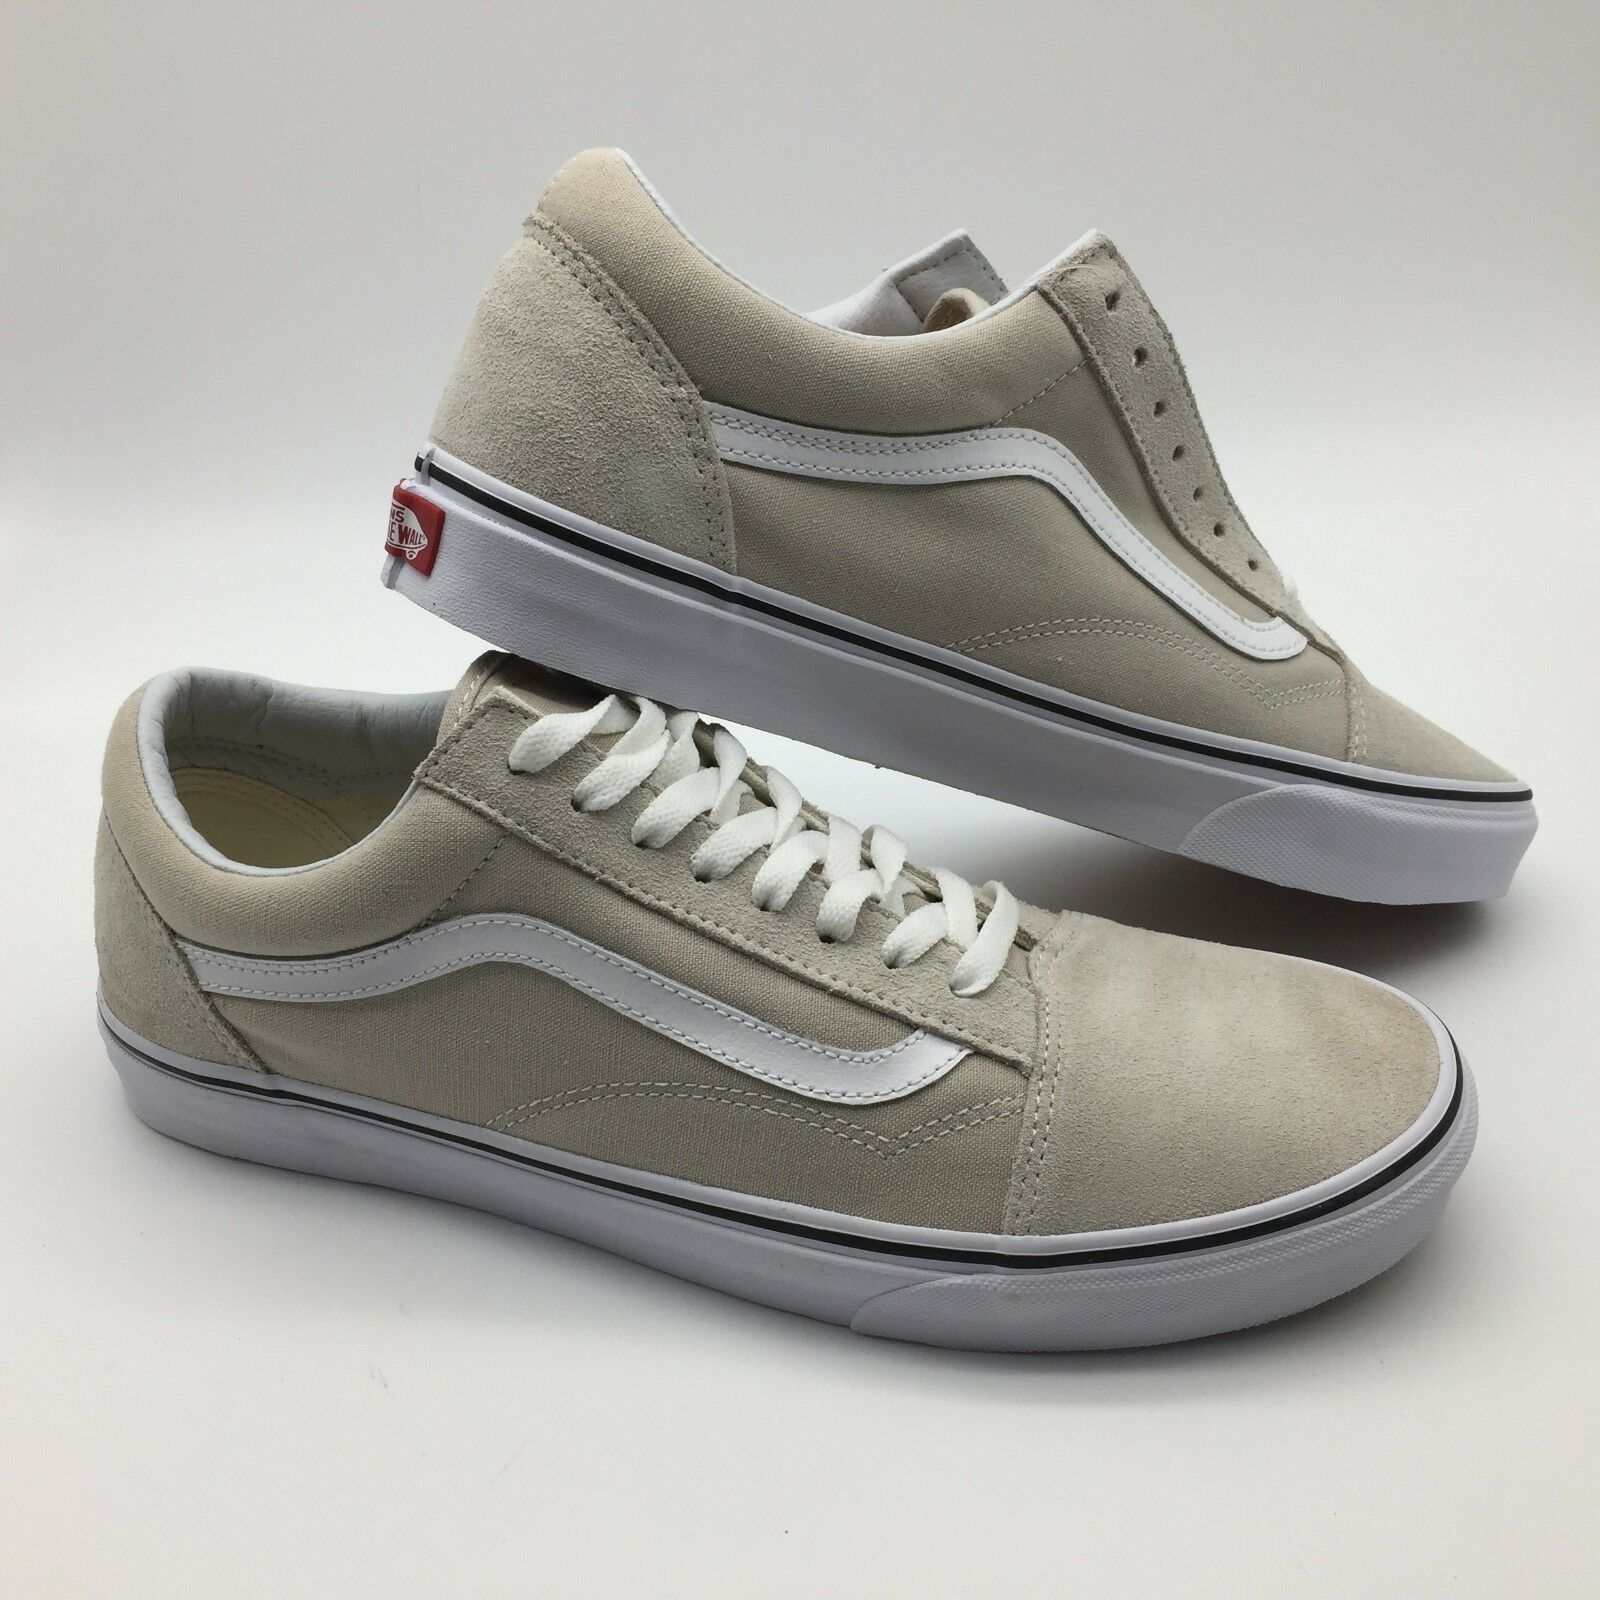 Vans Men's shoes's Old Skool -- Silver.